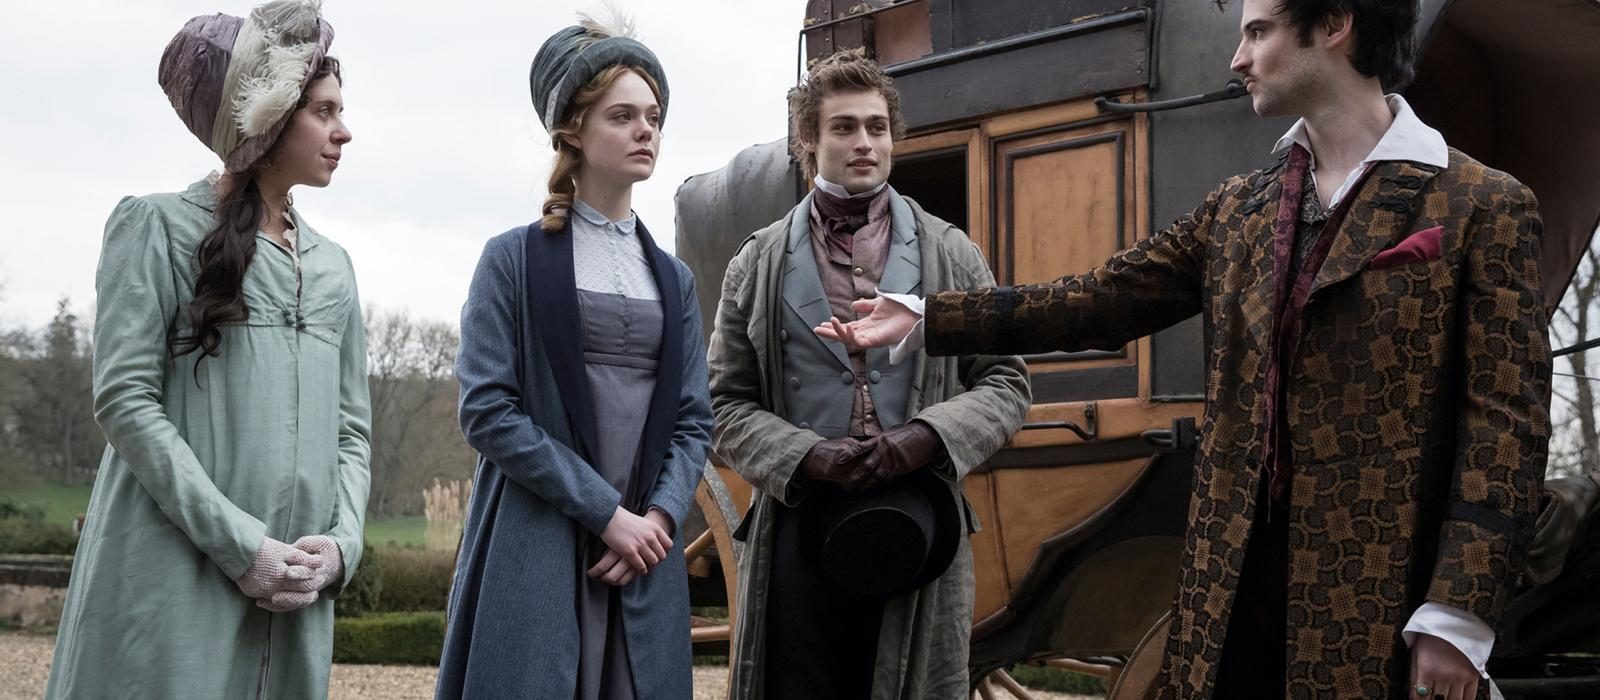 Tom Sturridge, Elle Fanning, Bel Powley y Douglas Booth en Mary Shelley (2017)